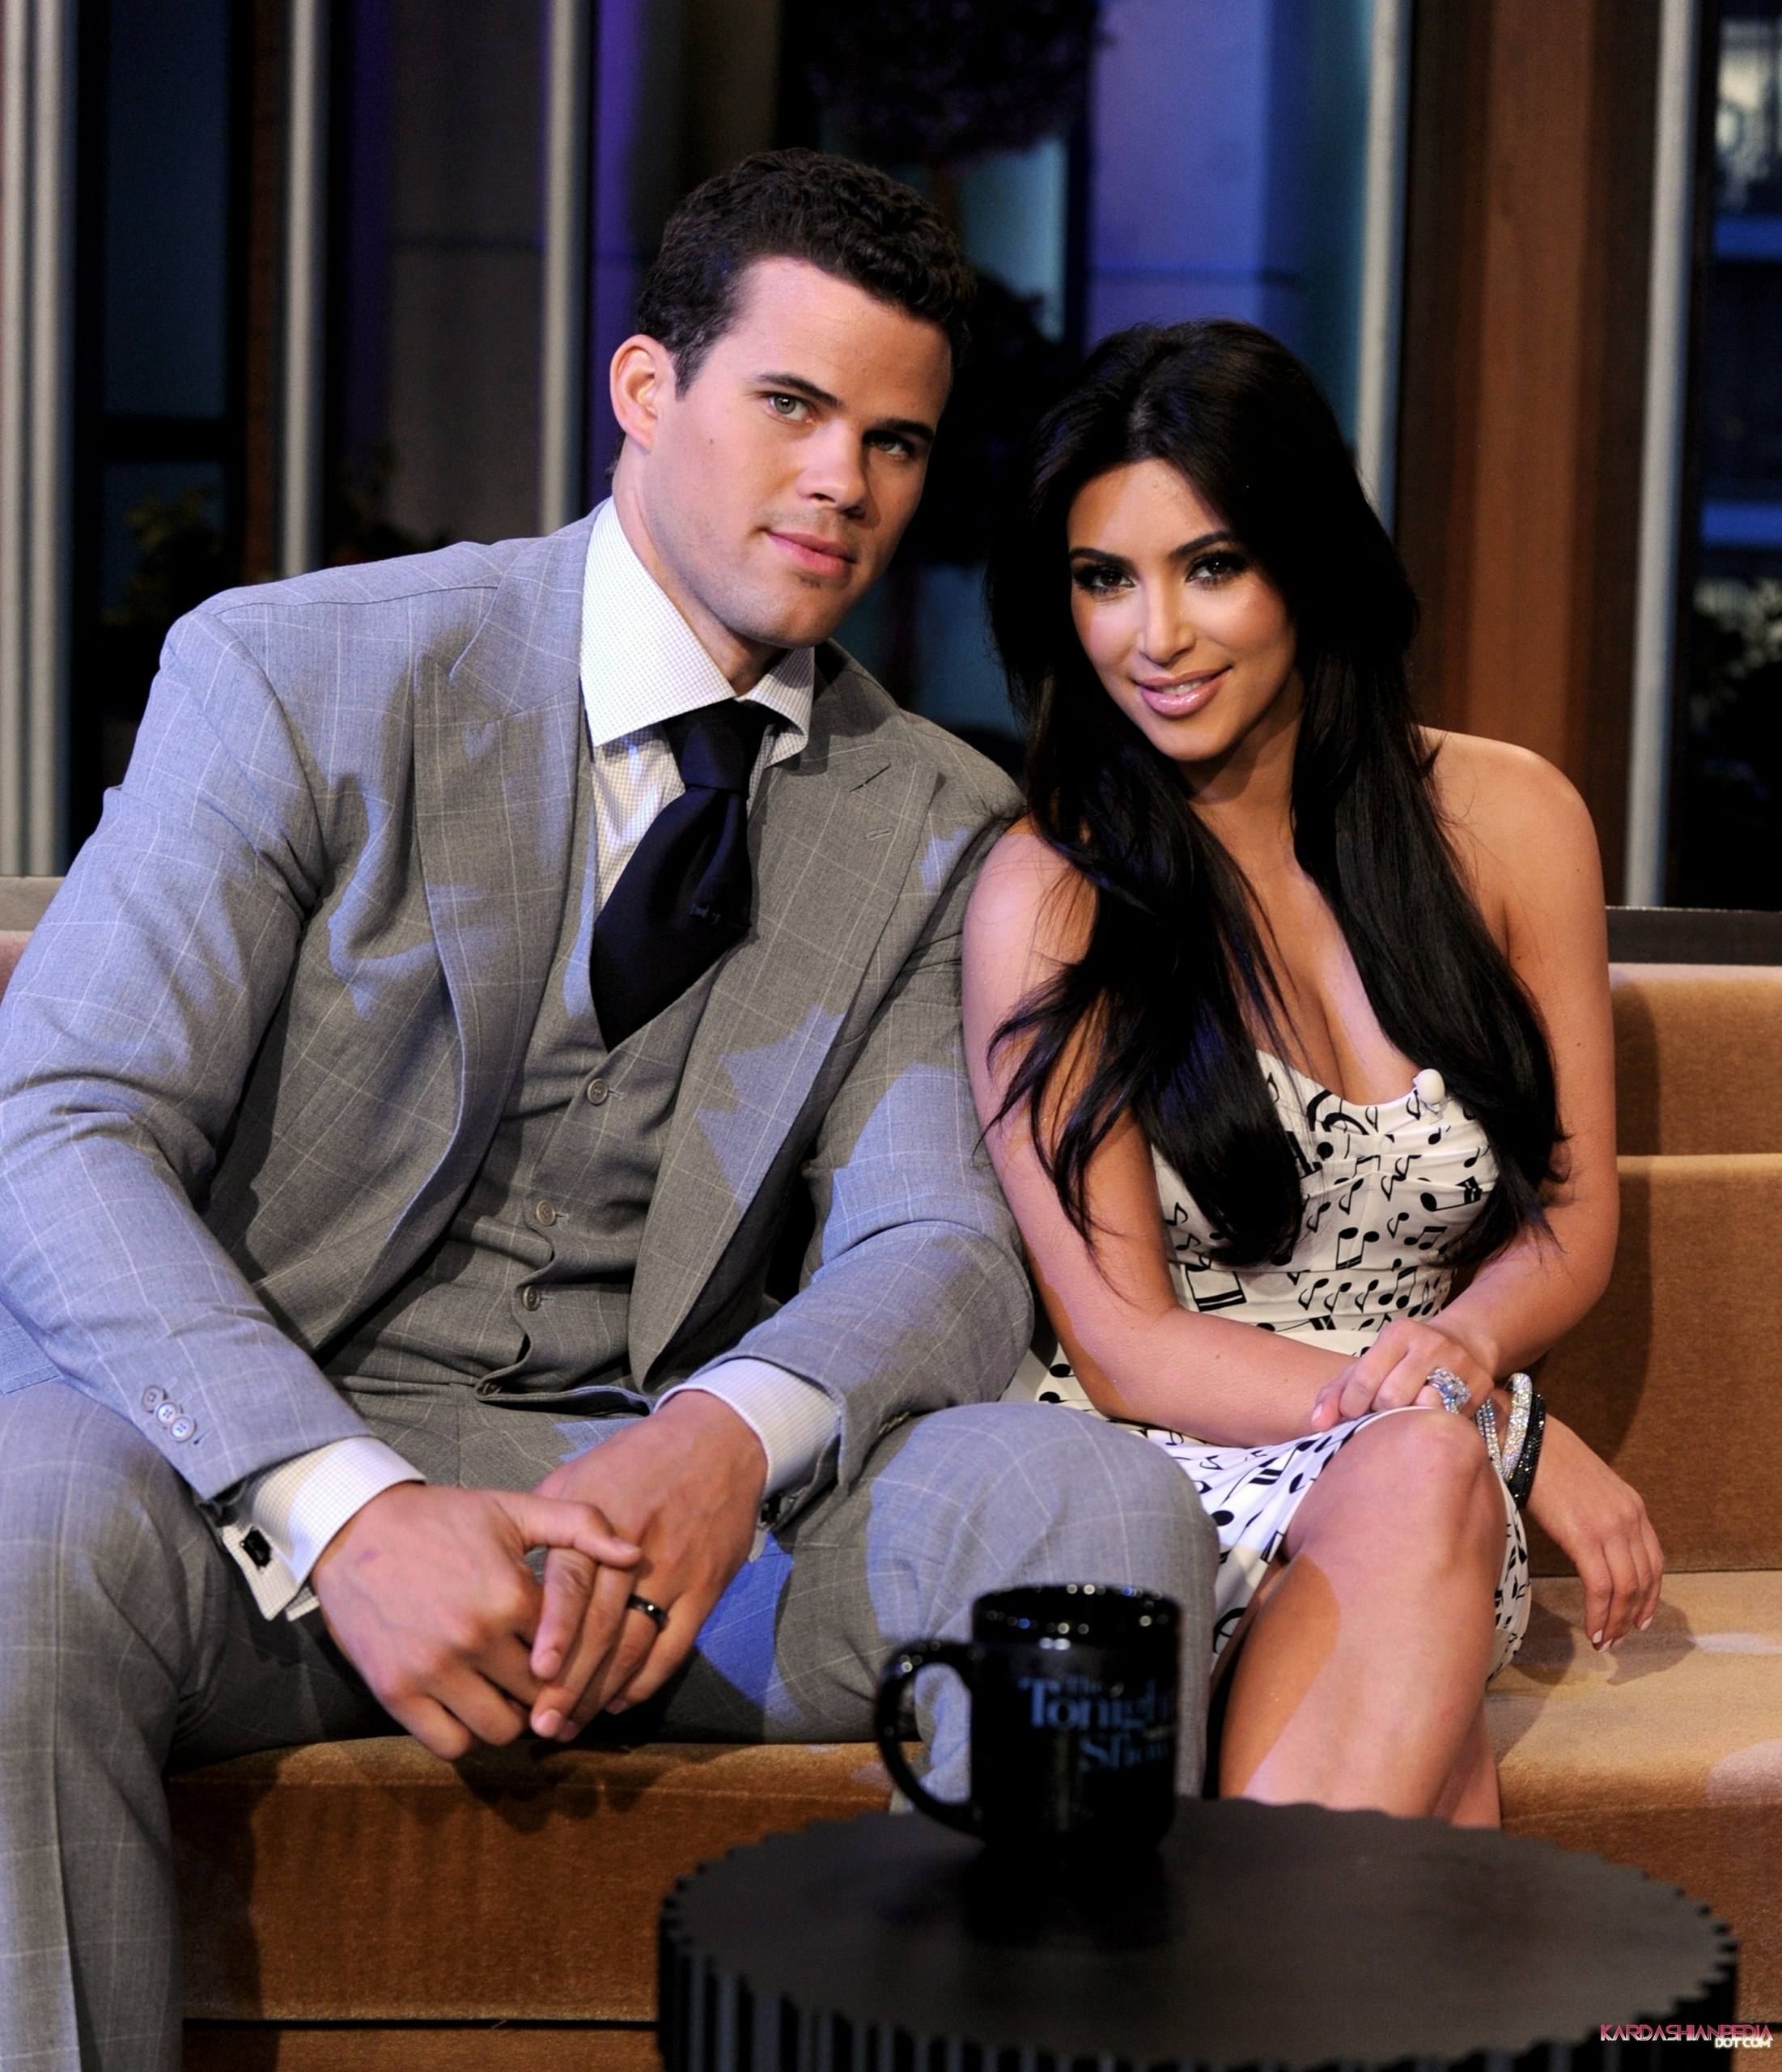 Kim and Kris on The Tonight Show with Jay Leno - 04/10/2011